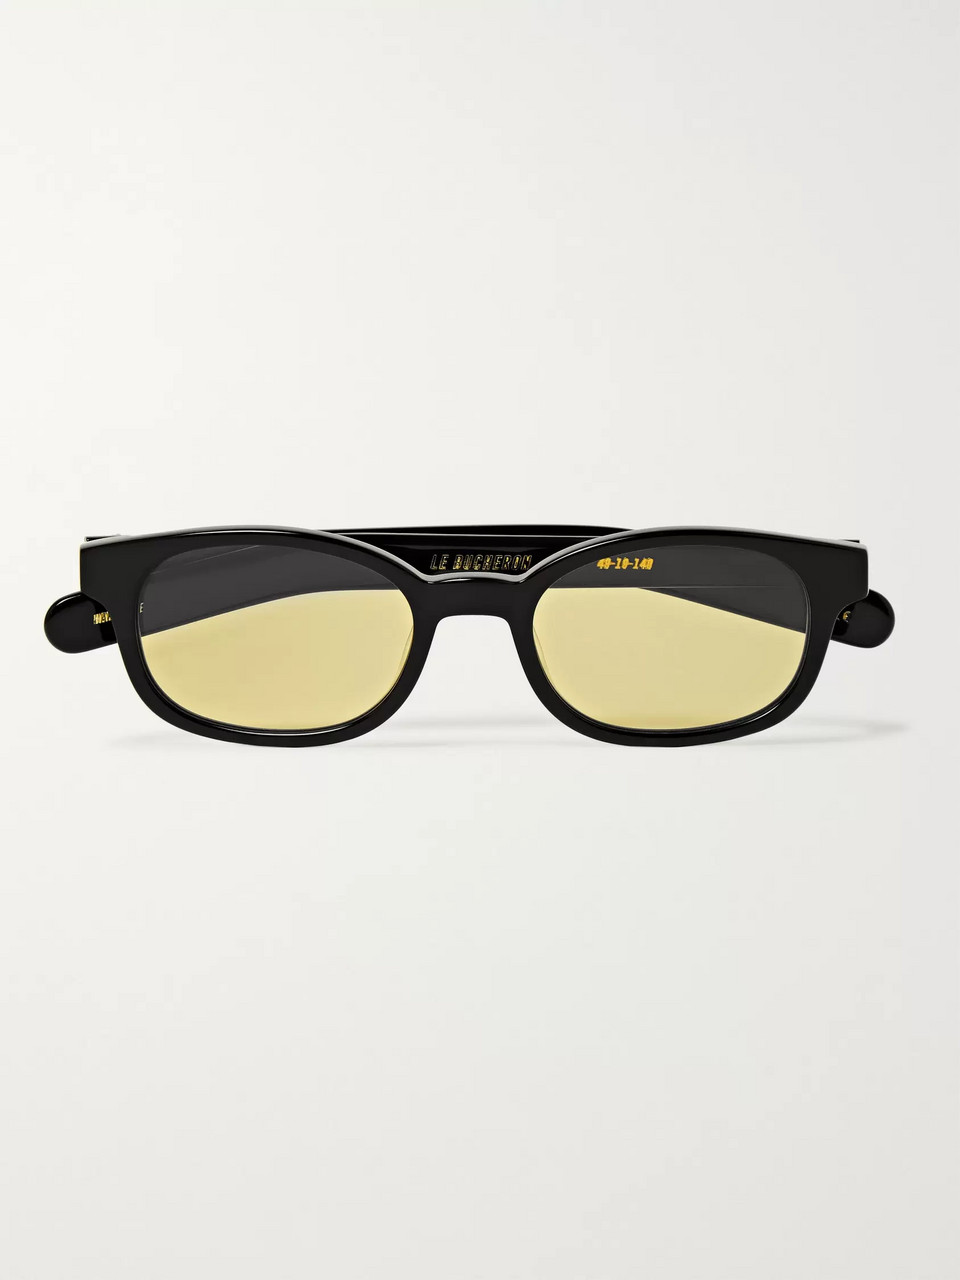 FLATLIST Le Bucheron Rectangle-Frame Acetate Sunglasses